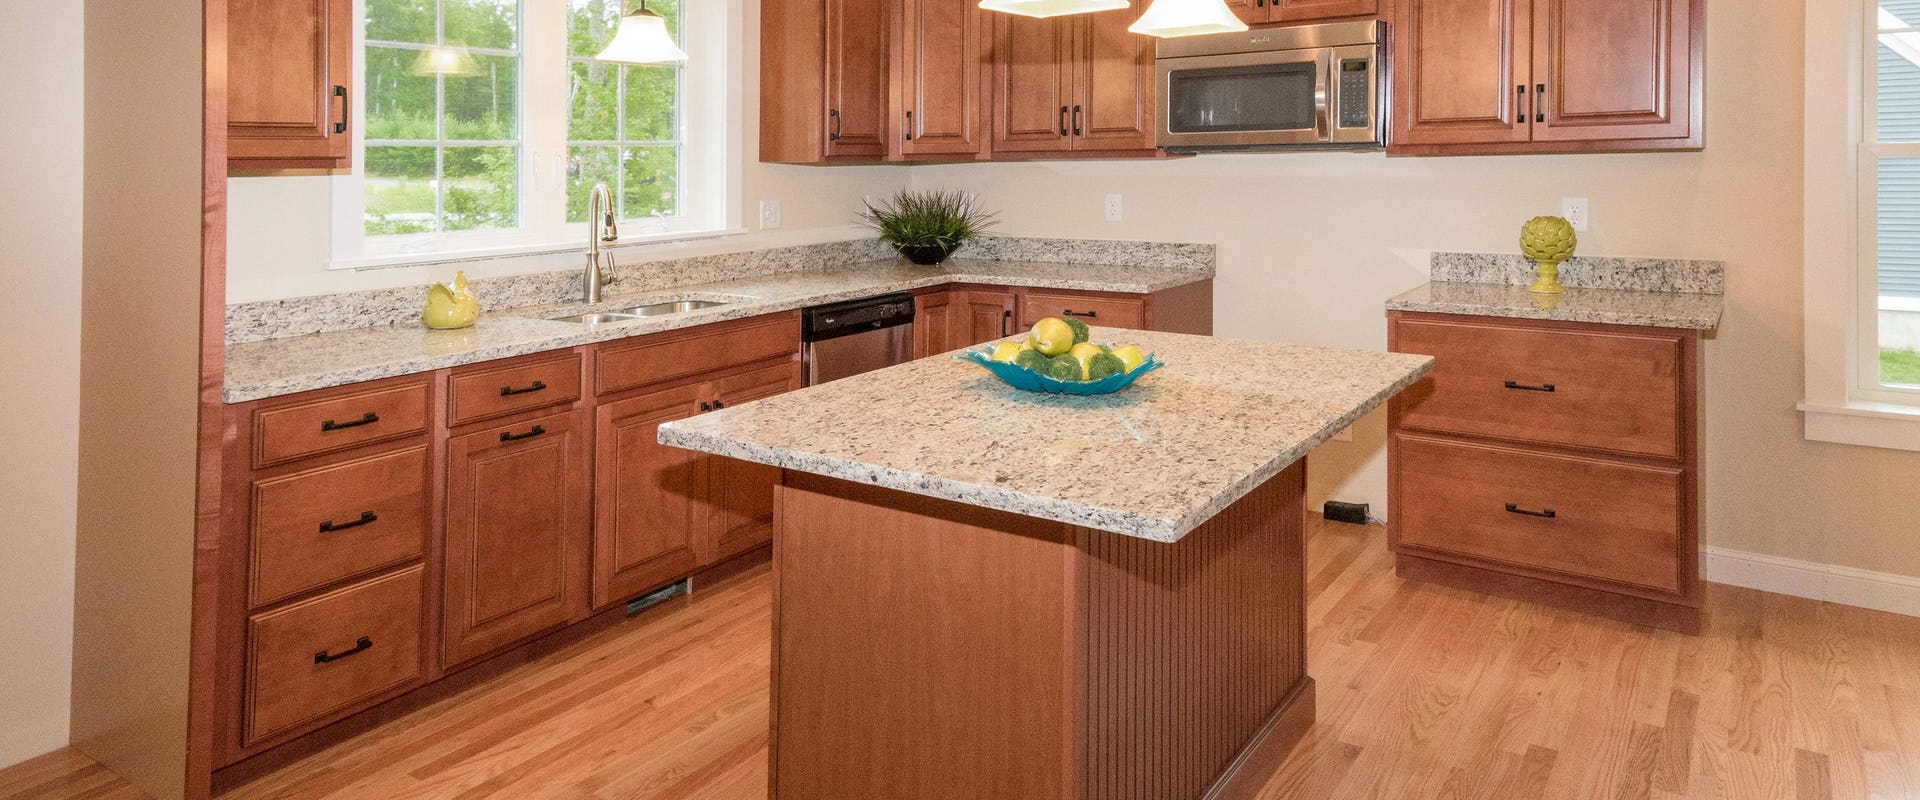 maple kitchen with granite counters in new home